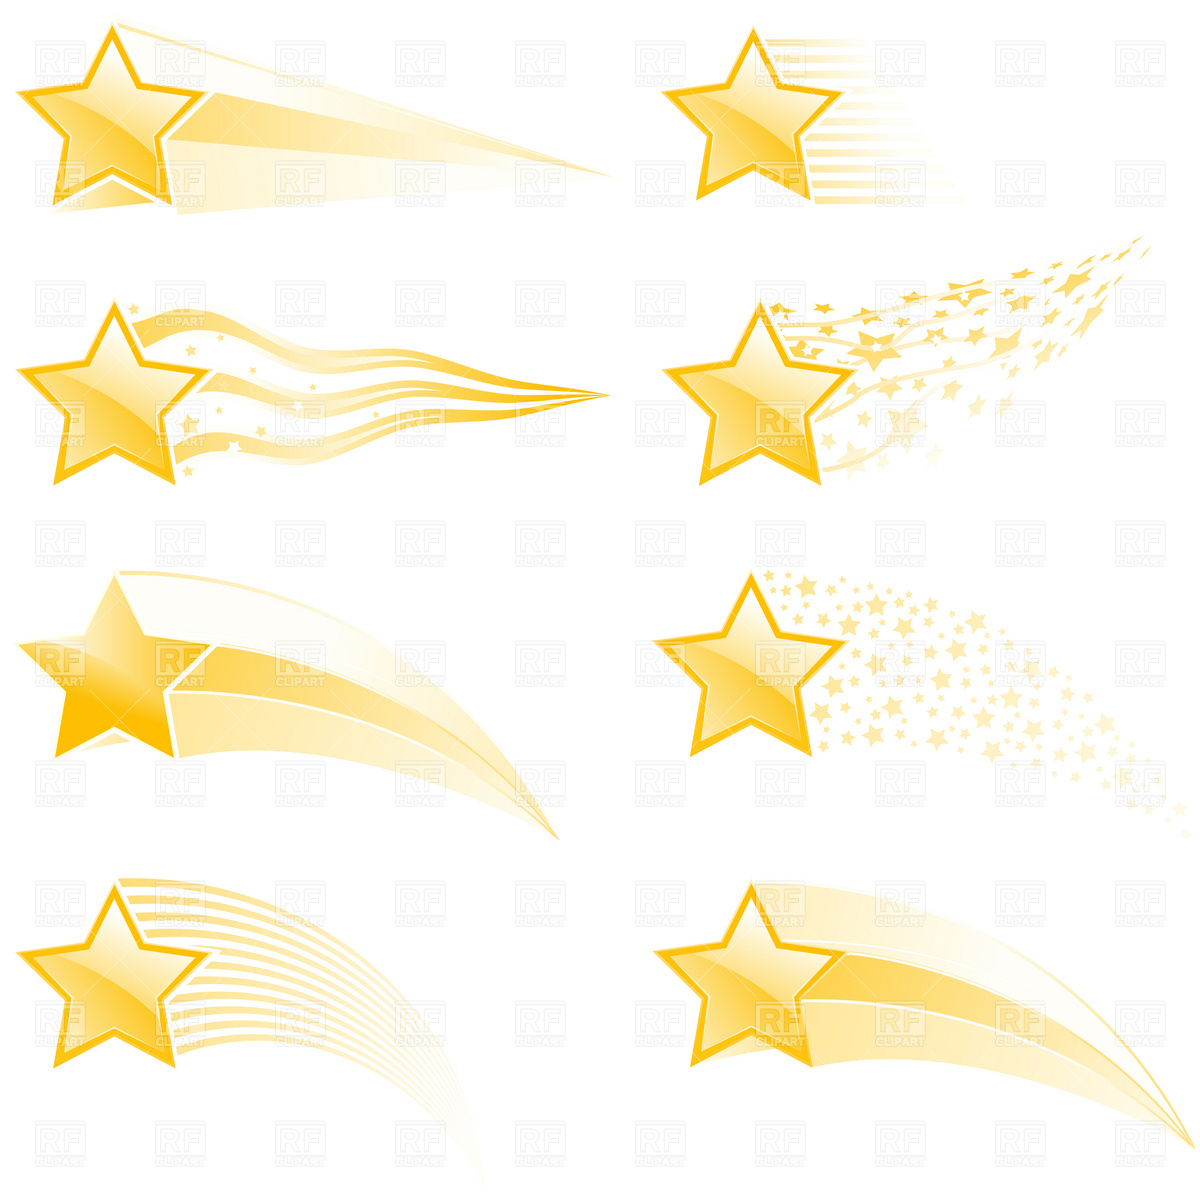 Flying Stars And Star Tracks In Different Style 4873 Design Elements